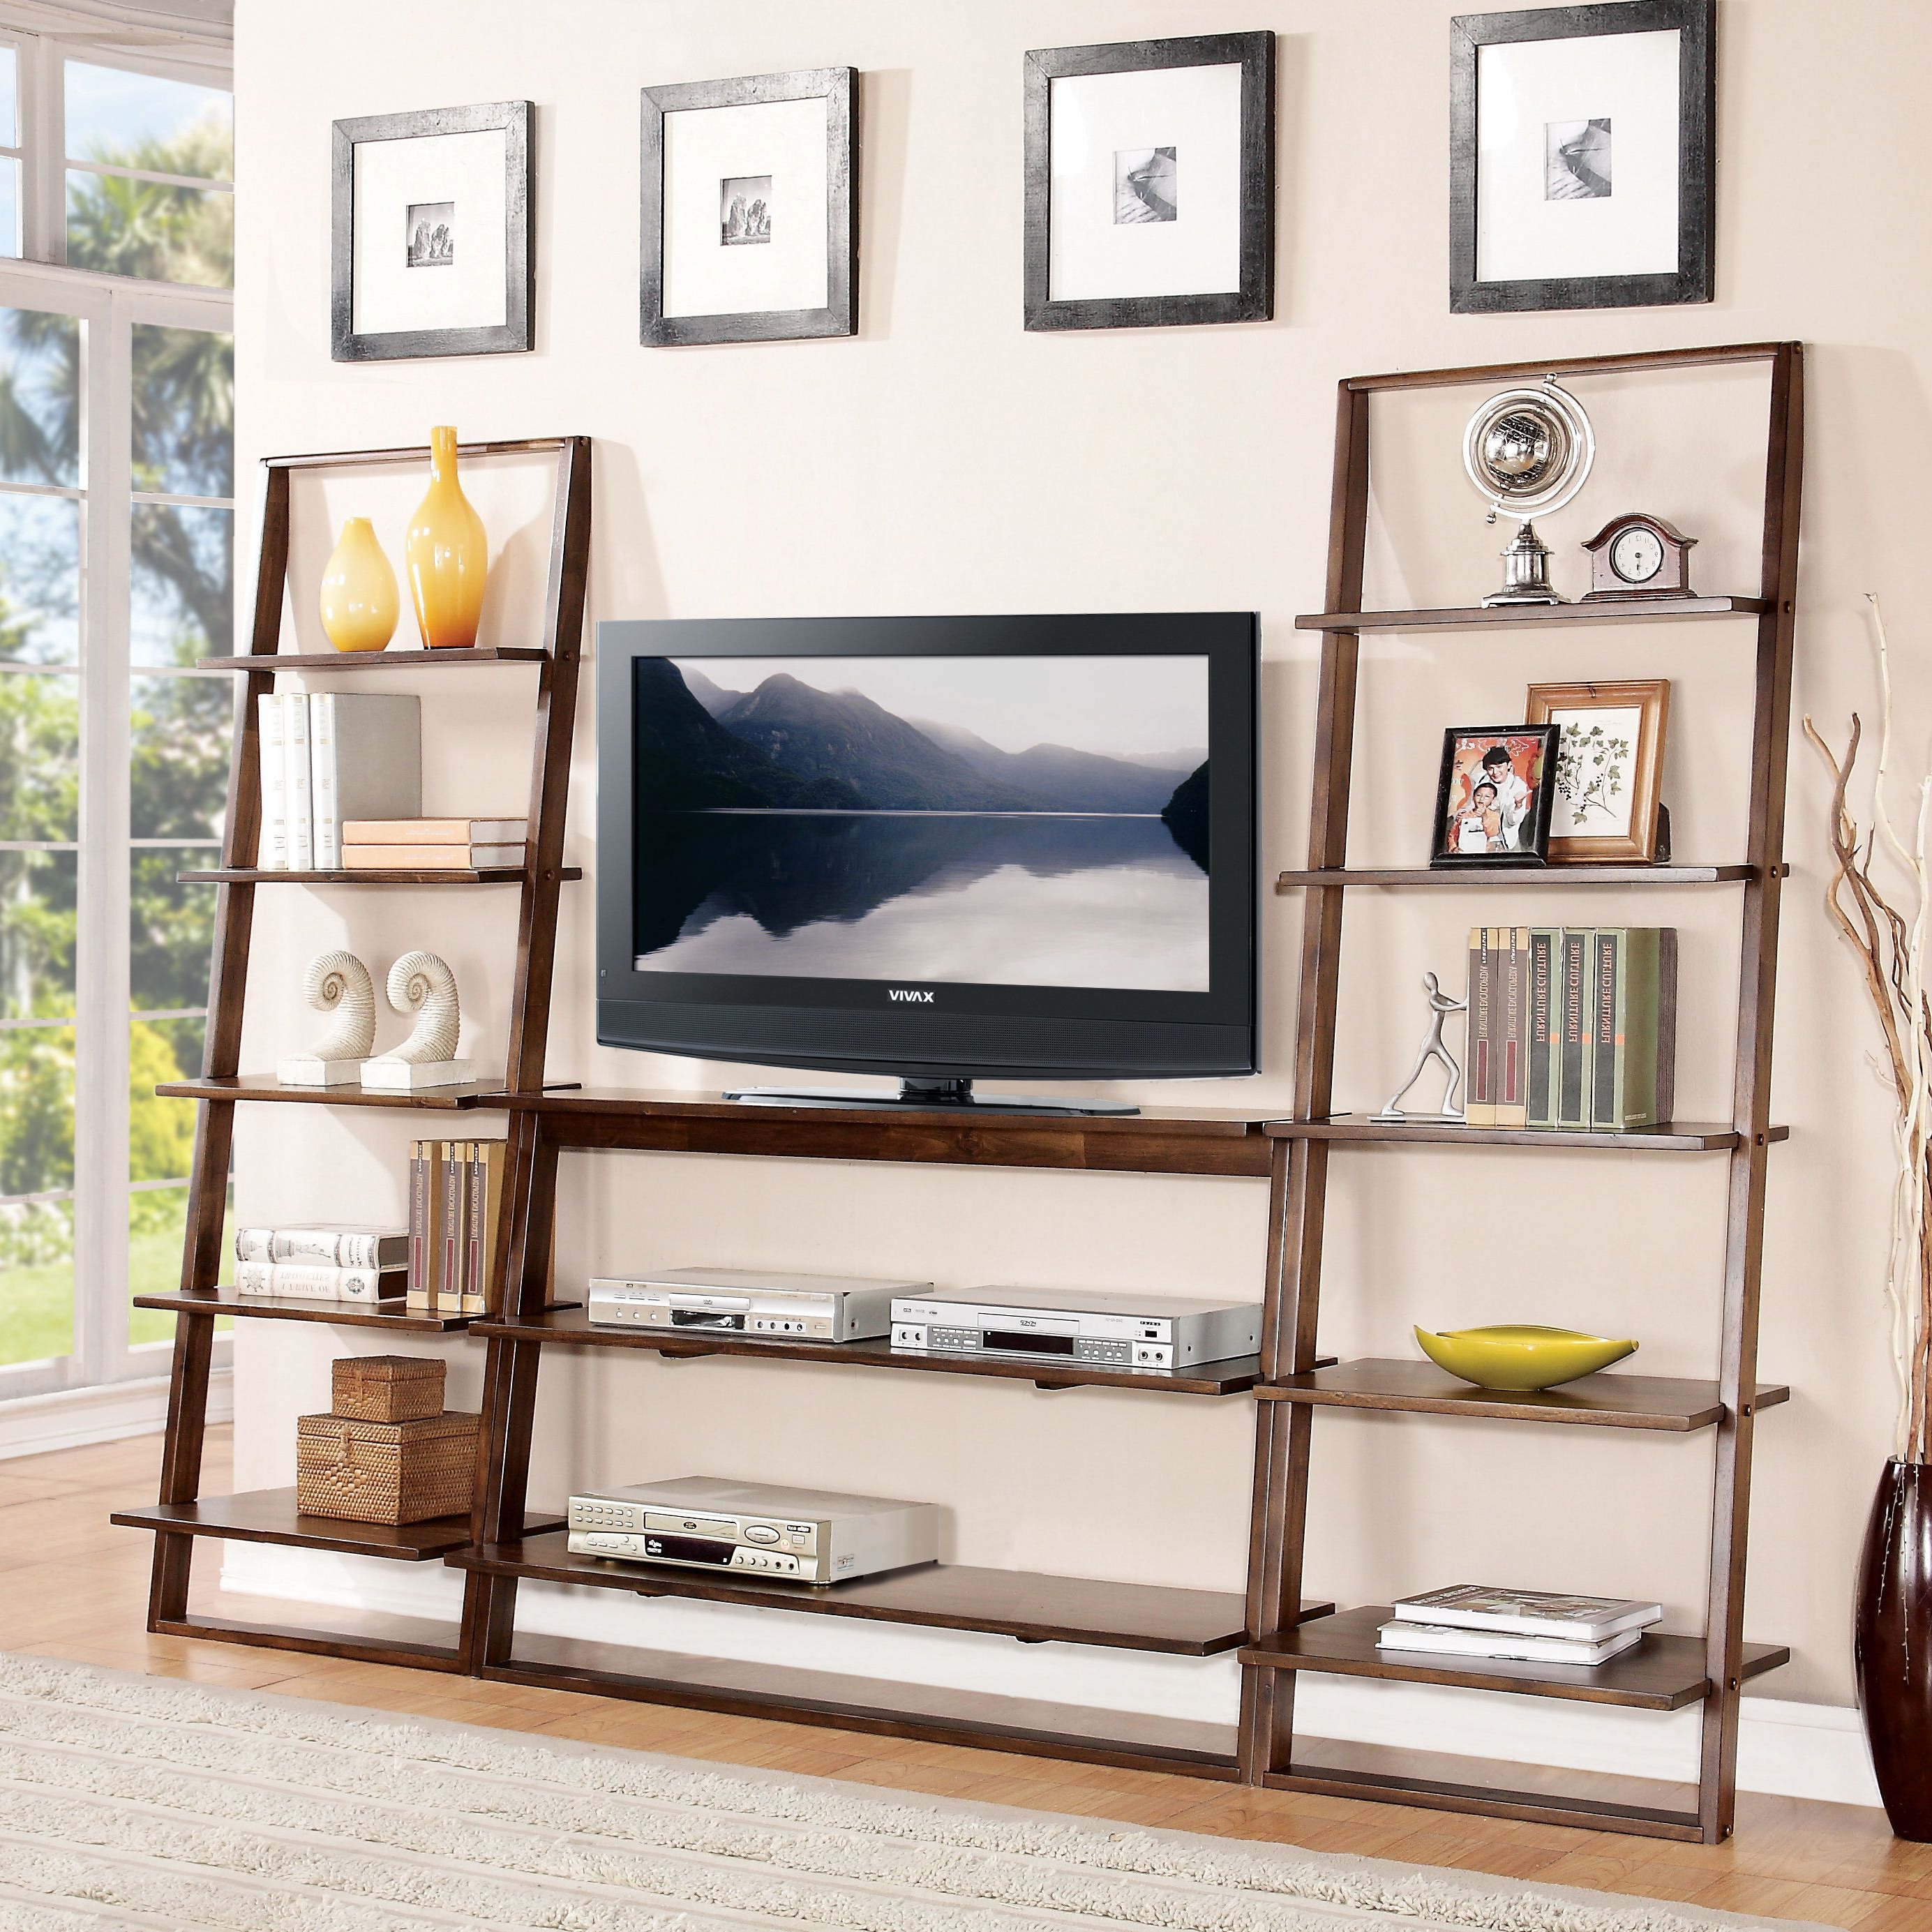 Popular Inspiring Space Saving Ideas Using Leaning Bookcase: Amazing Leaning Pertaining To Tv Stands And Bookshelf (Gallery 11 of 20)